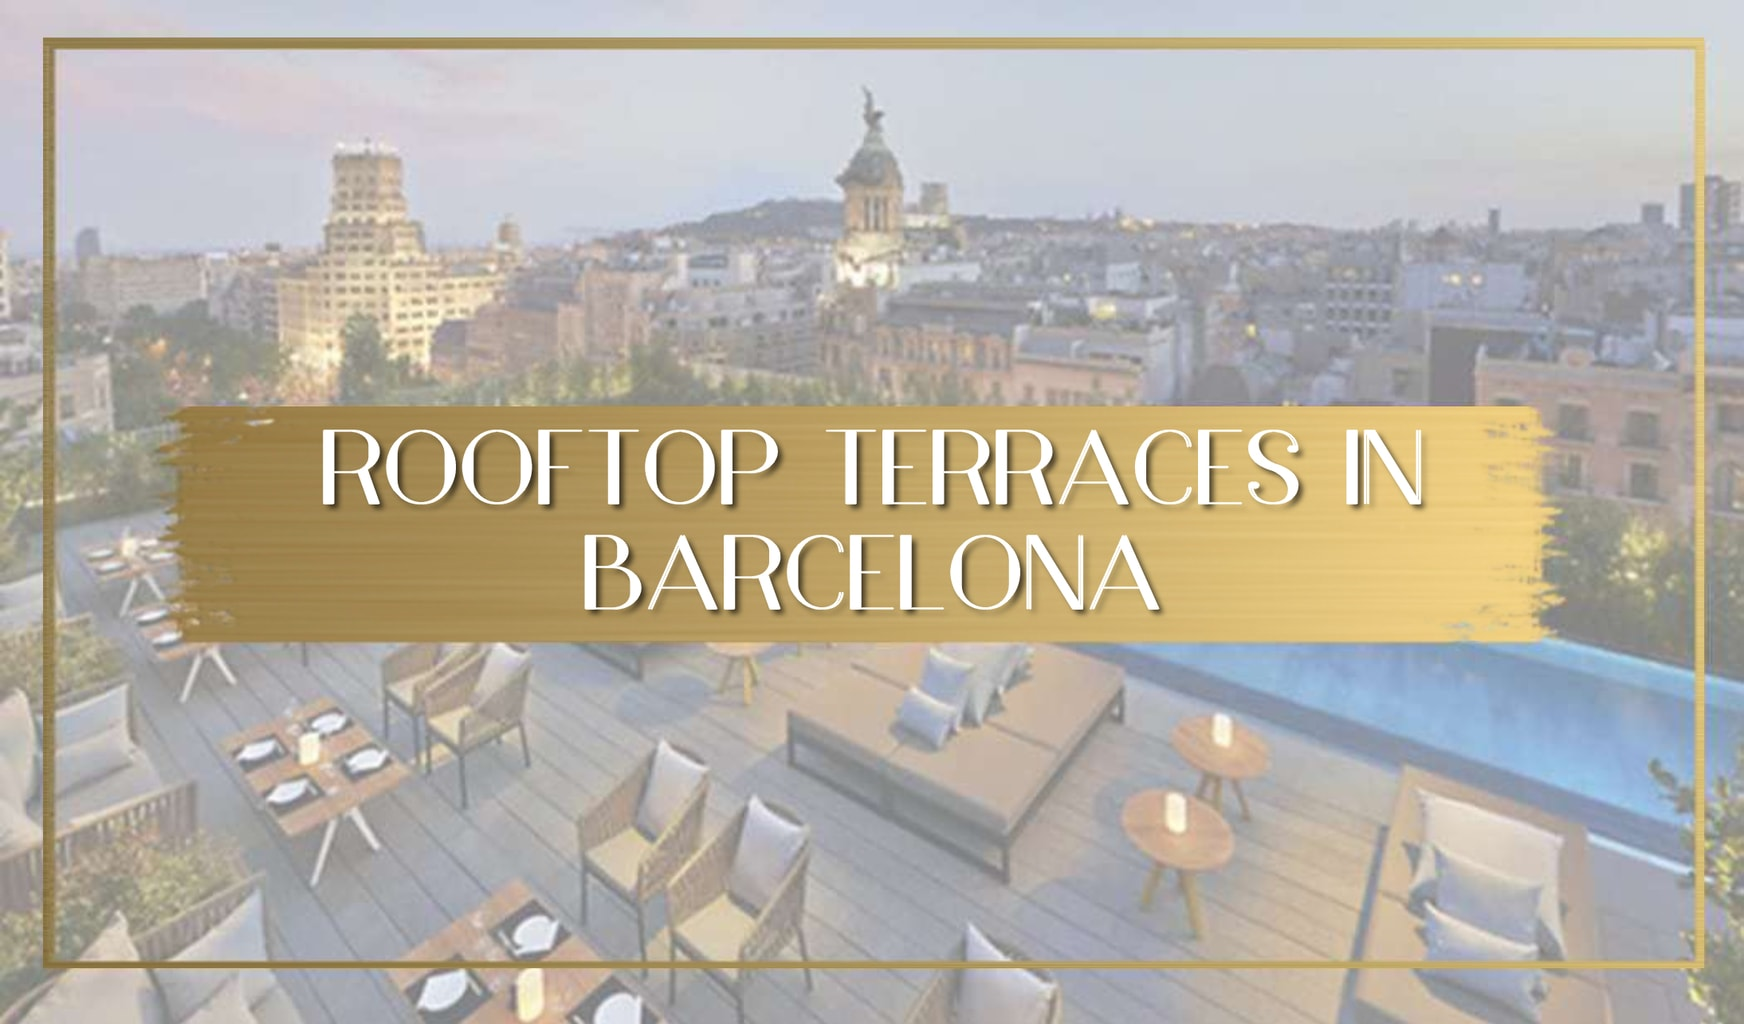 The best rooftop terraces in Barcelona main